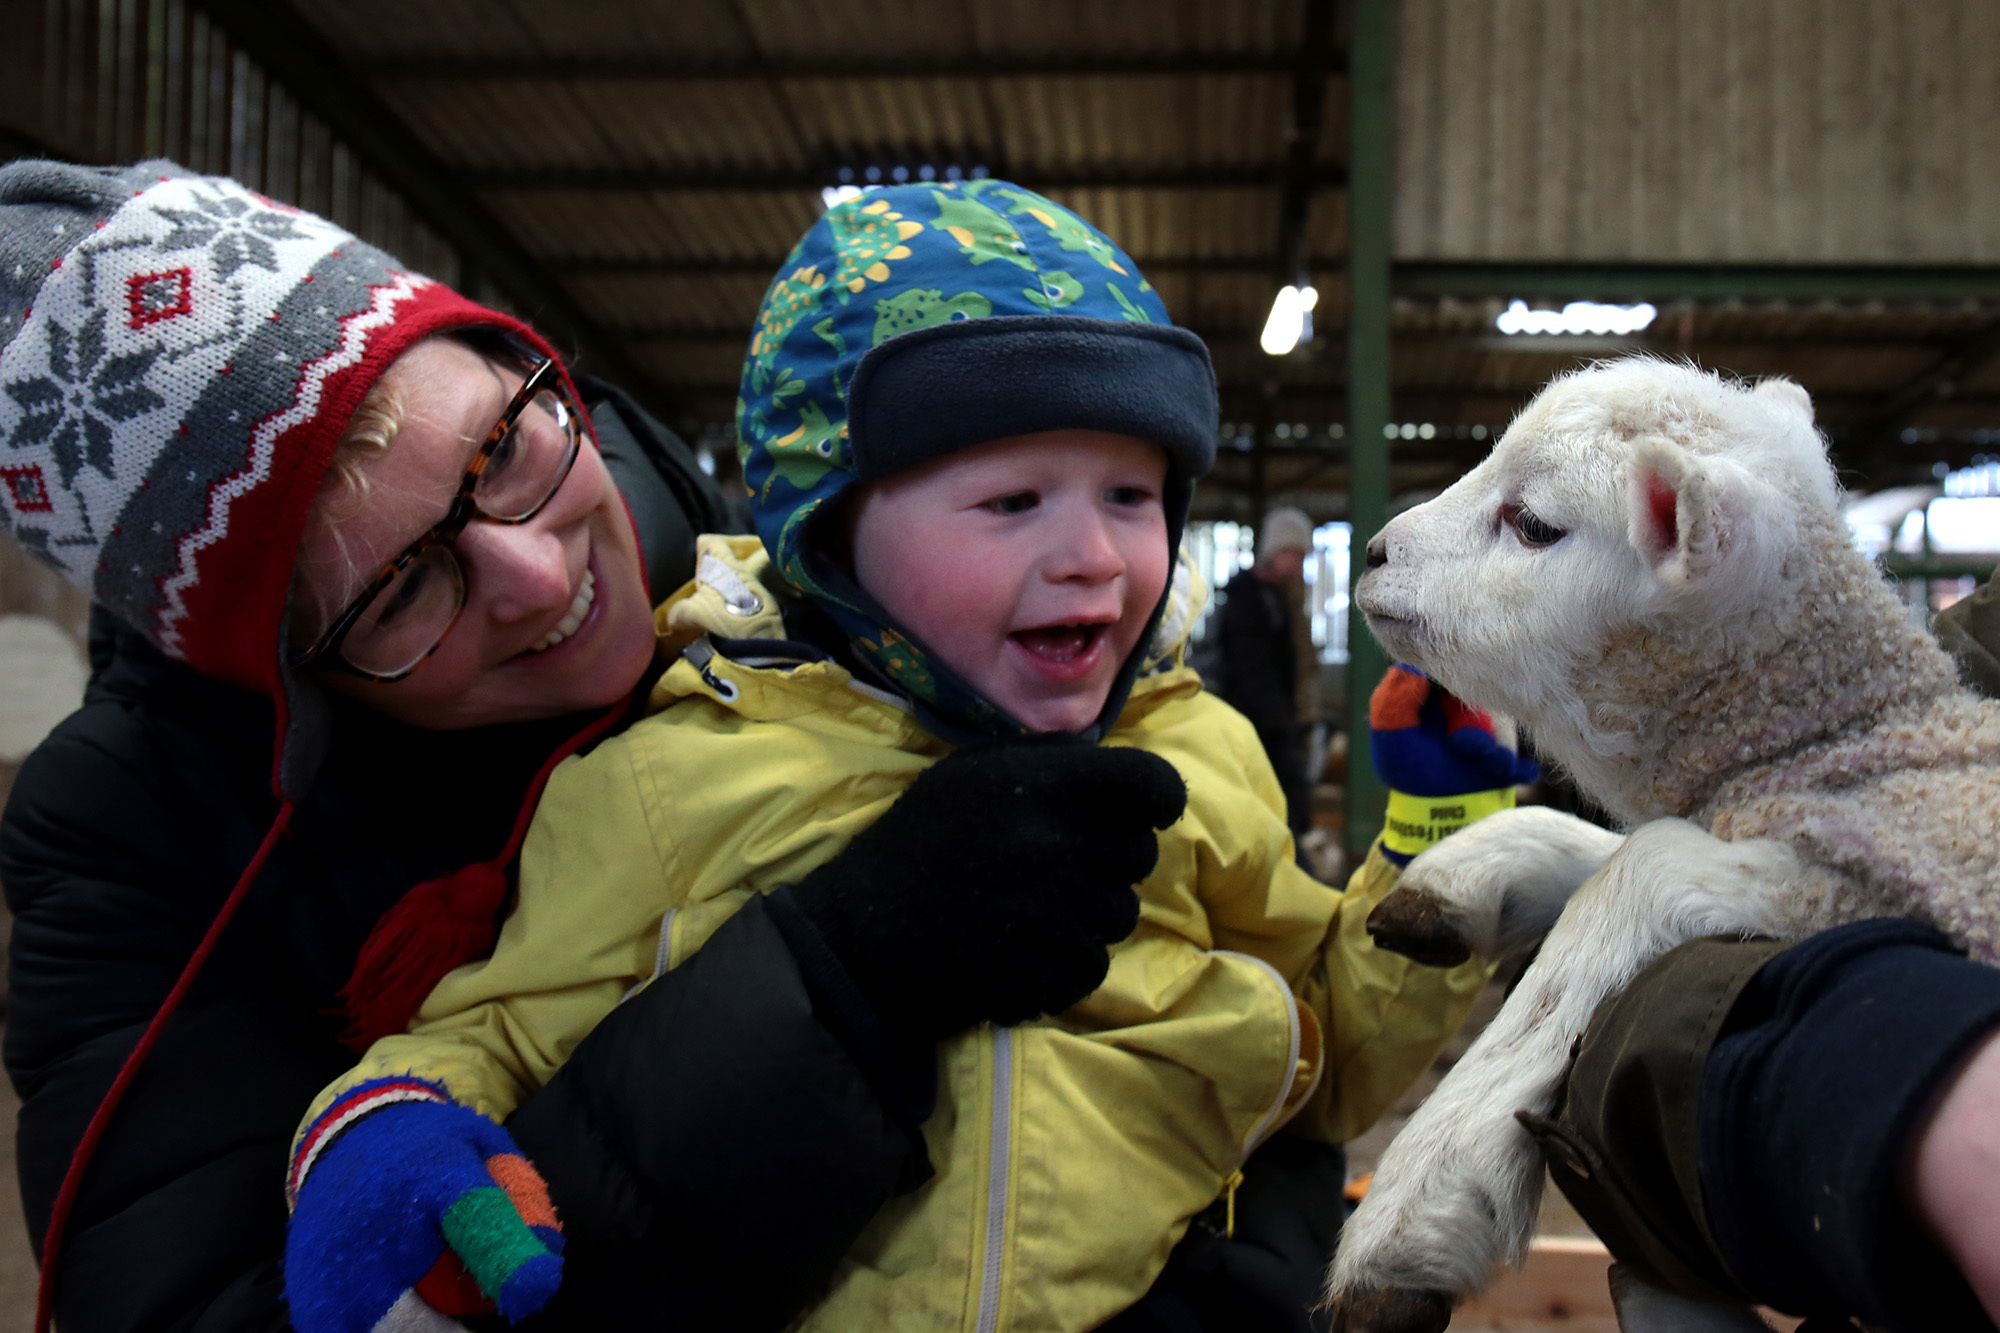 One year old Zephyr Davies and mum Flora are  delighted by one of the lambs at the first day's visiting to th lambing at the Earth Trust in Long WittenhamPicture: Ric Mellis17/3/2018